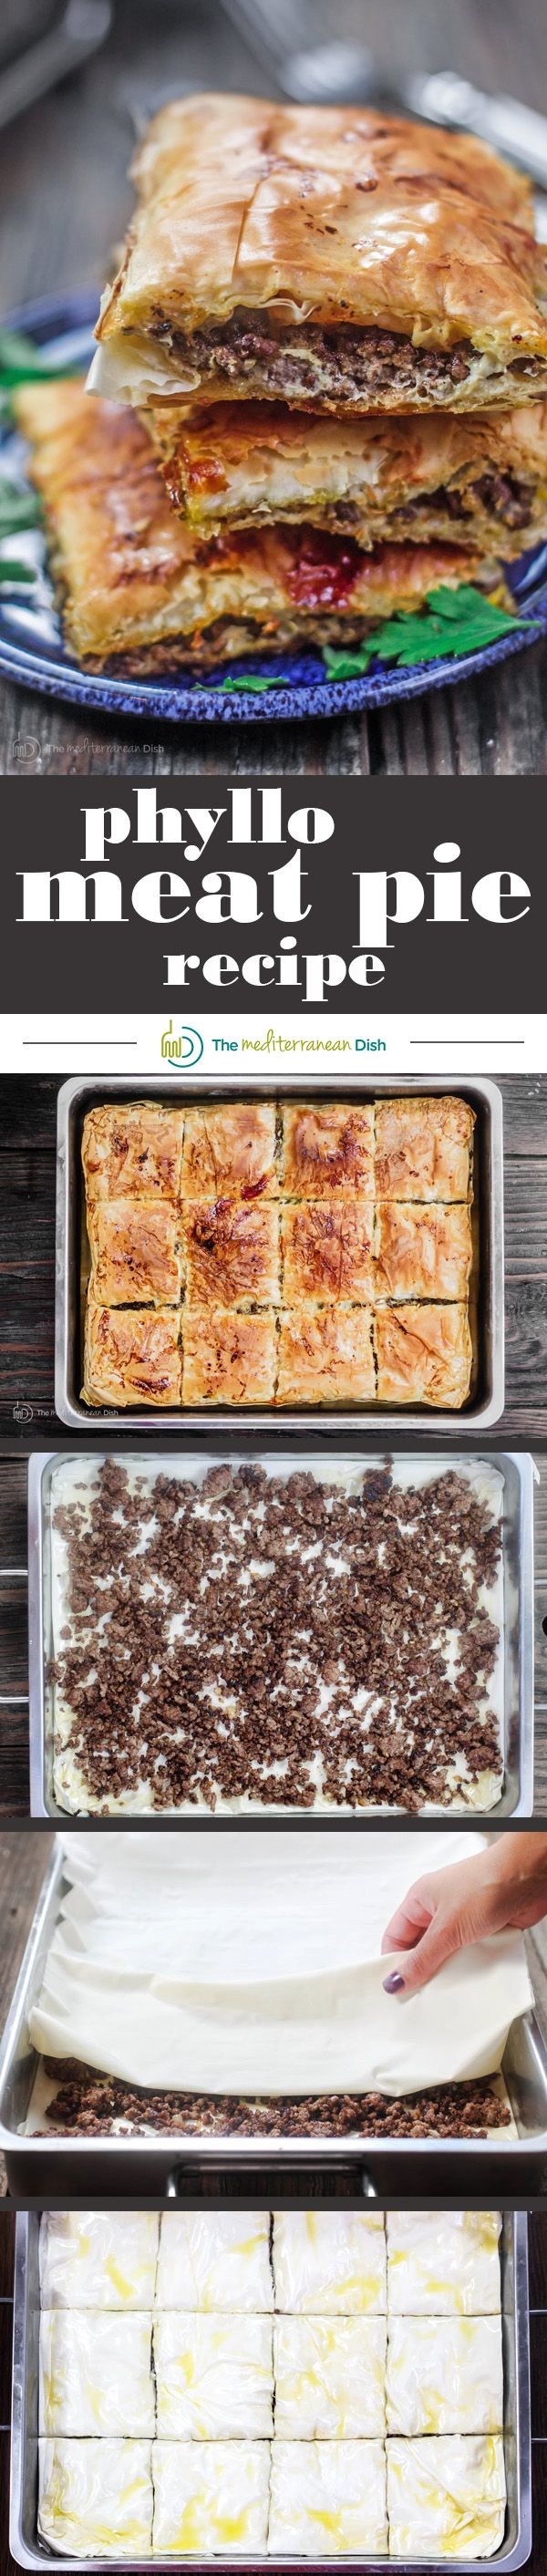 Phyllo Meat Pie Recipe (Egyptian Goullash) | The Mediterranean Dish. Spiced ground beef nestled in between layers of crispy, flaky, buttery phyllo dough! Recipe comes with step-by-step photos. An easy dinner with a big wow factor!